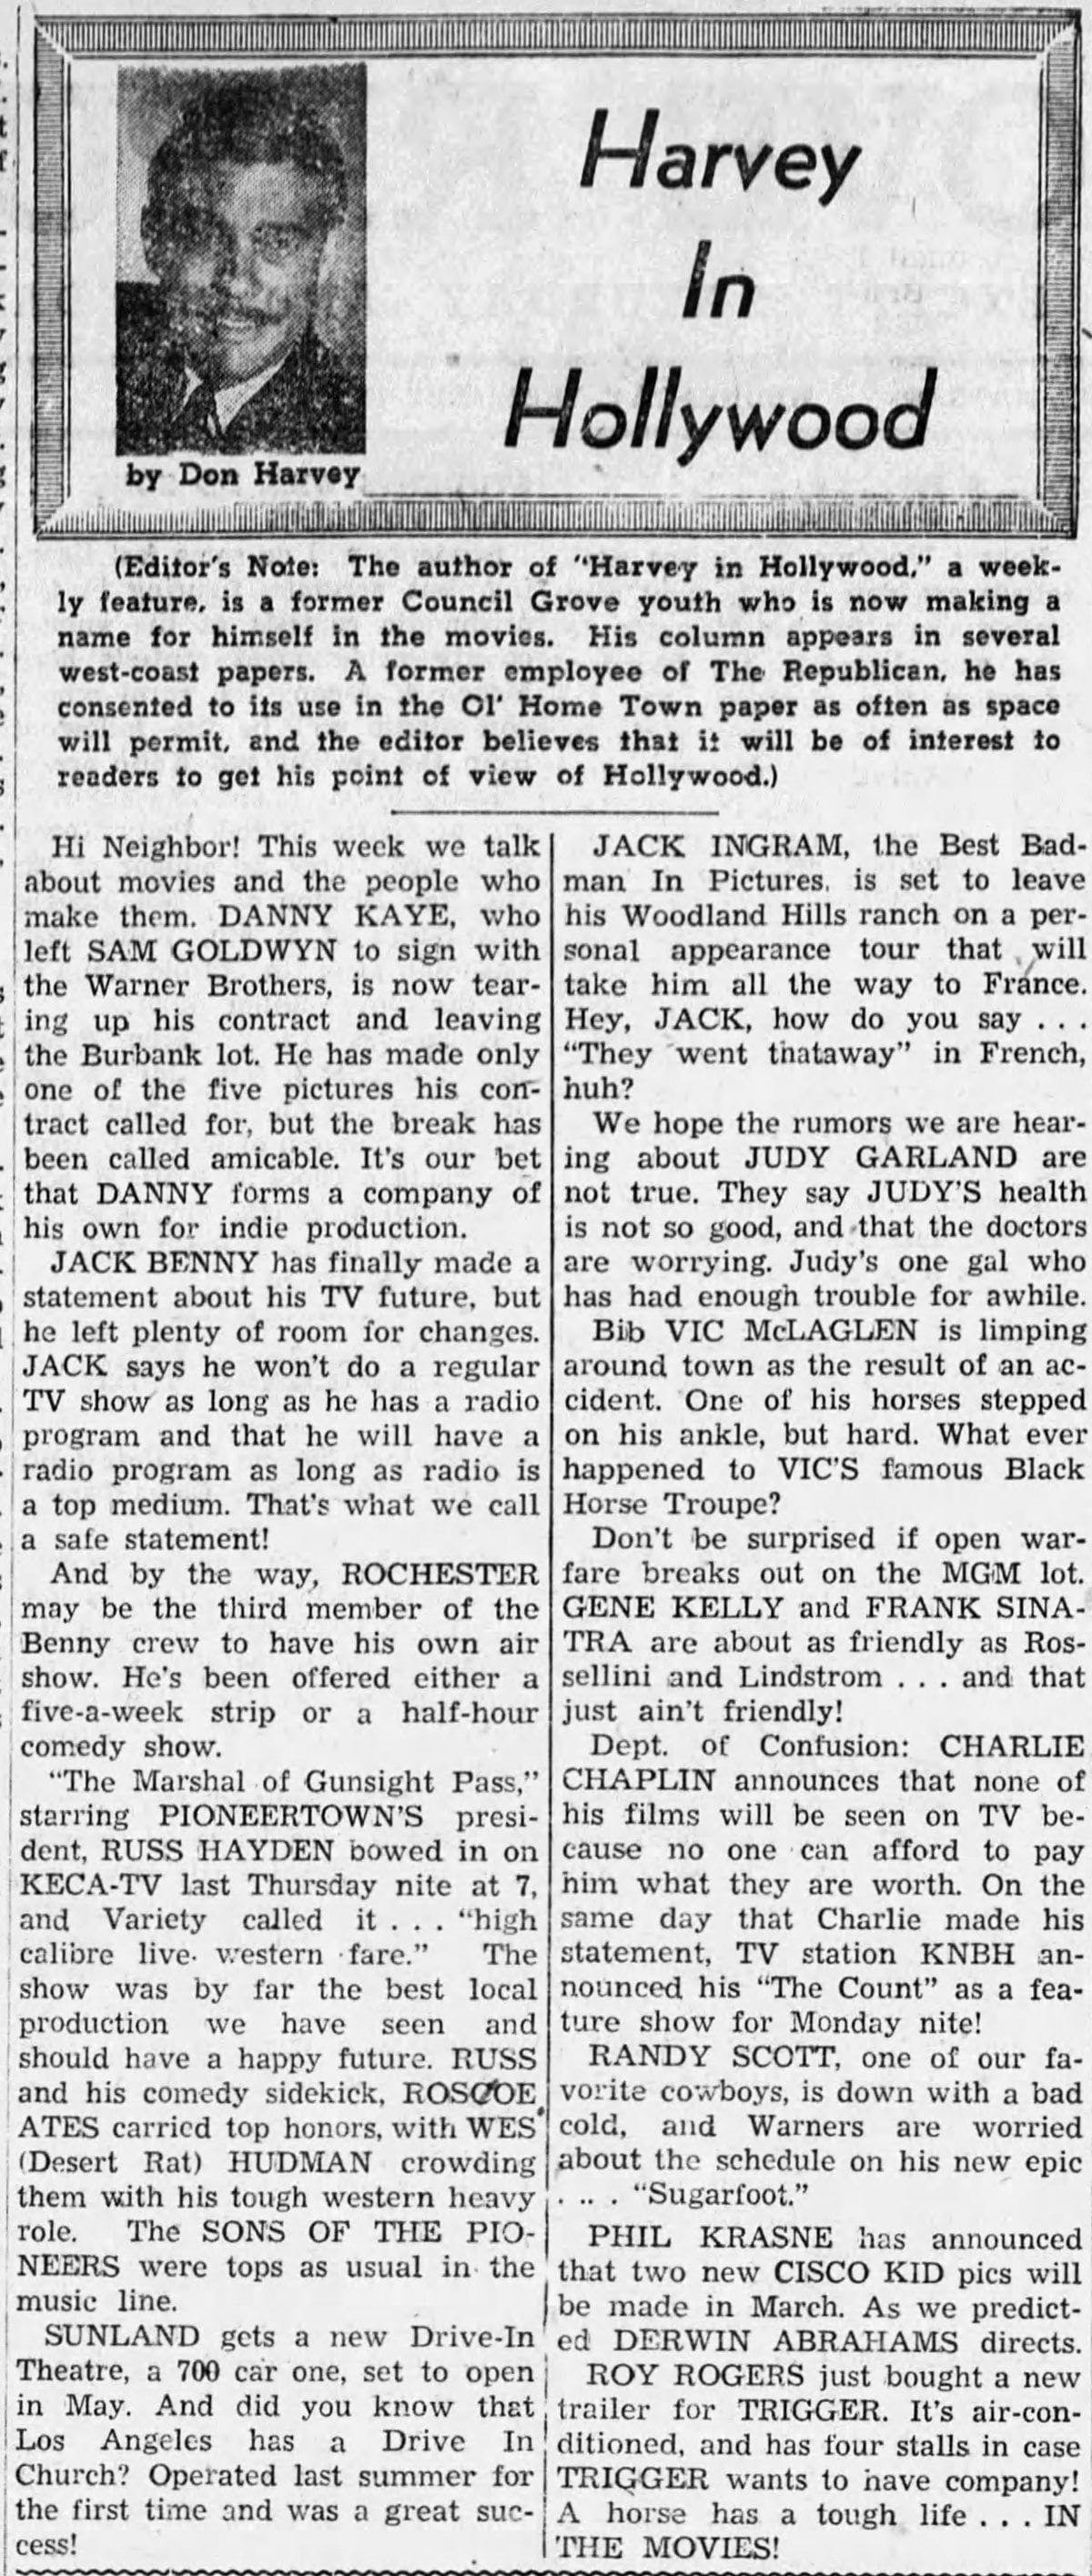 Harvey in Hollywood Feb. 22, 1950 article clipping